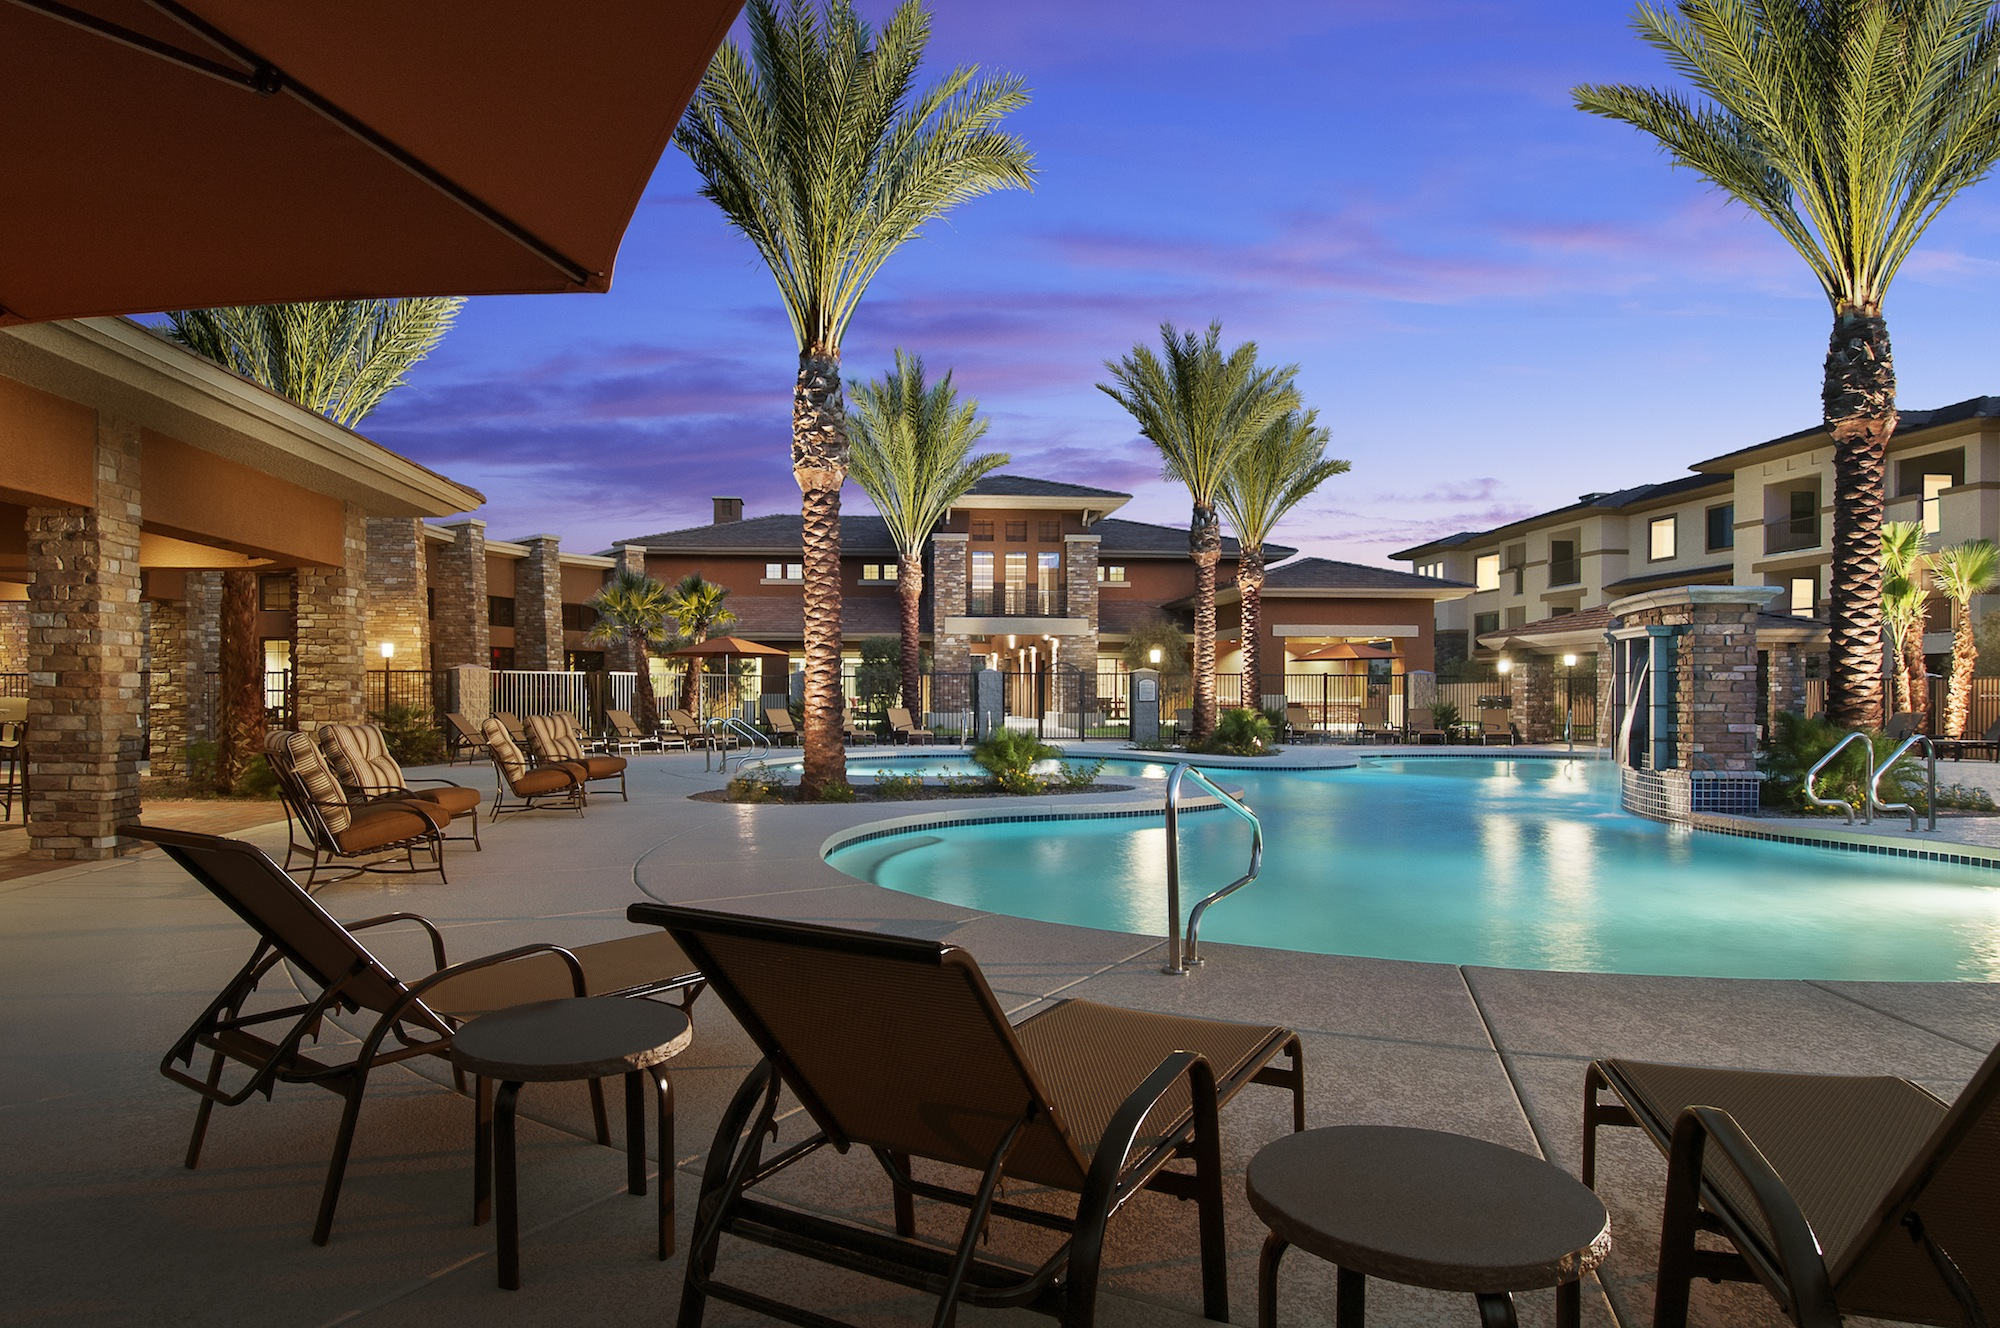 Luxury Apartment Of The Month In Chandler Parcland Crossing